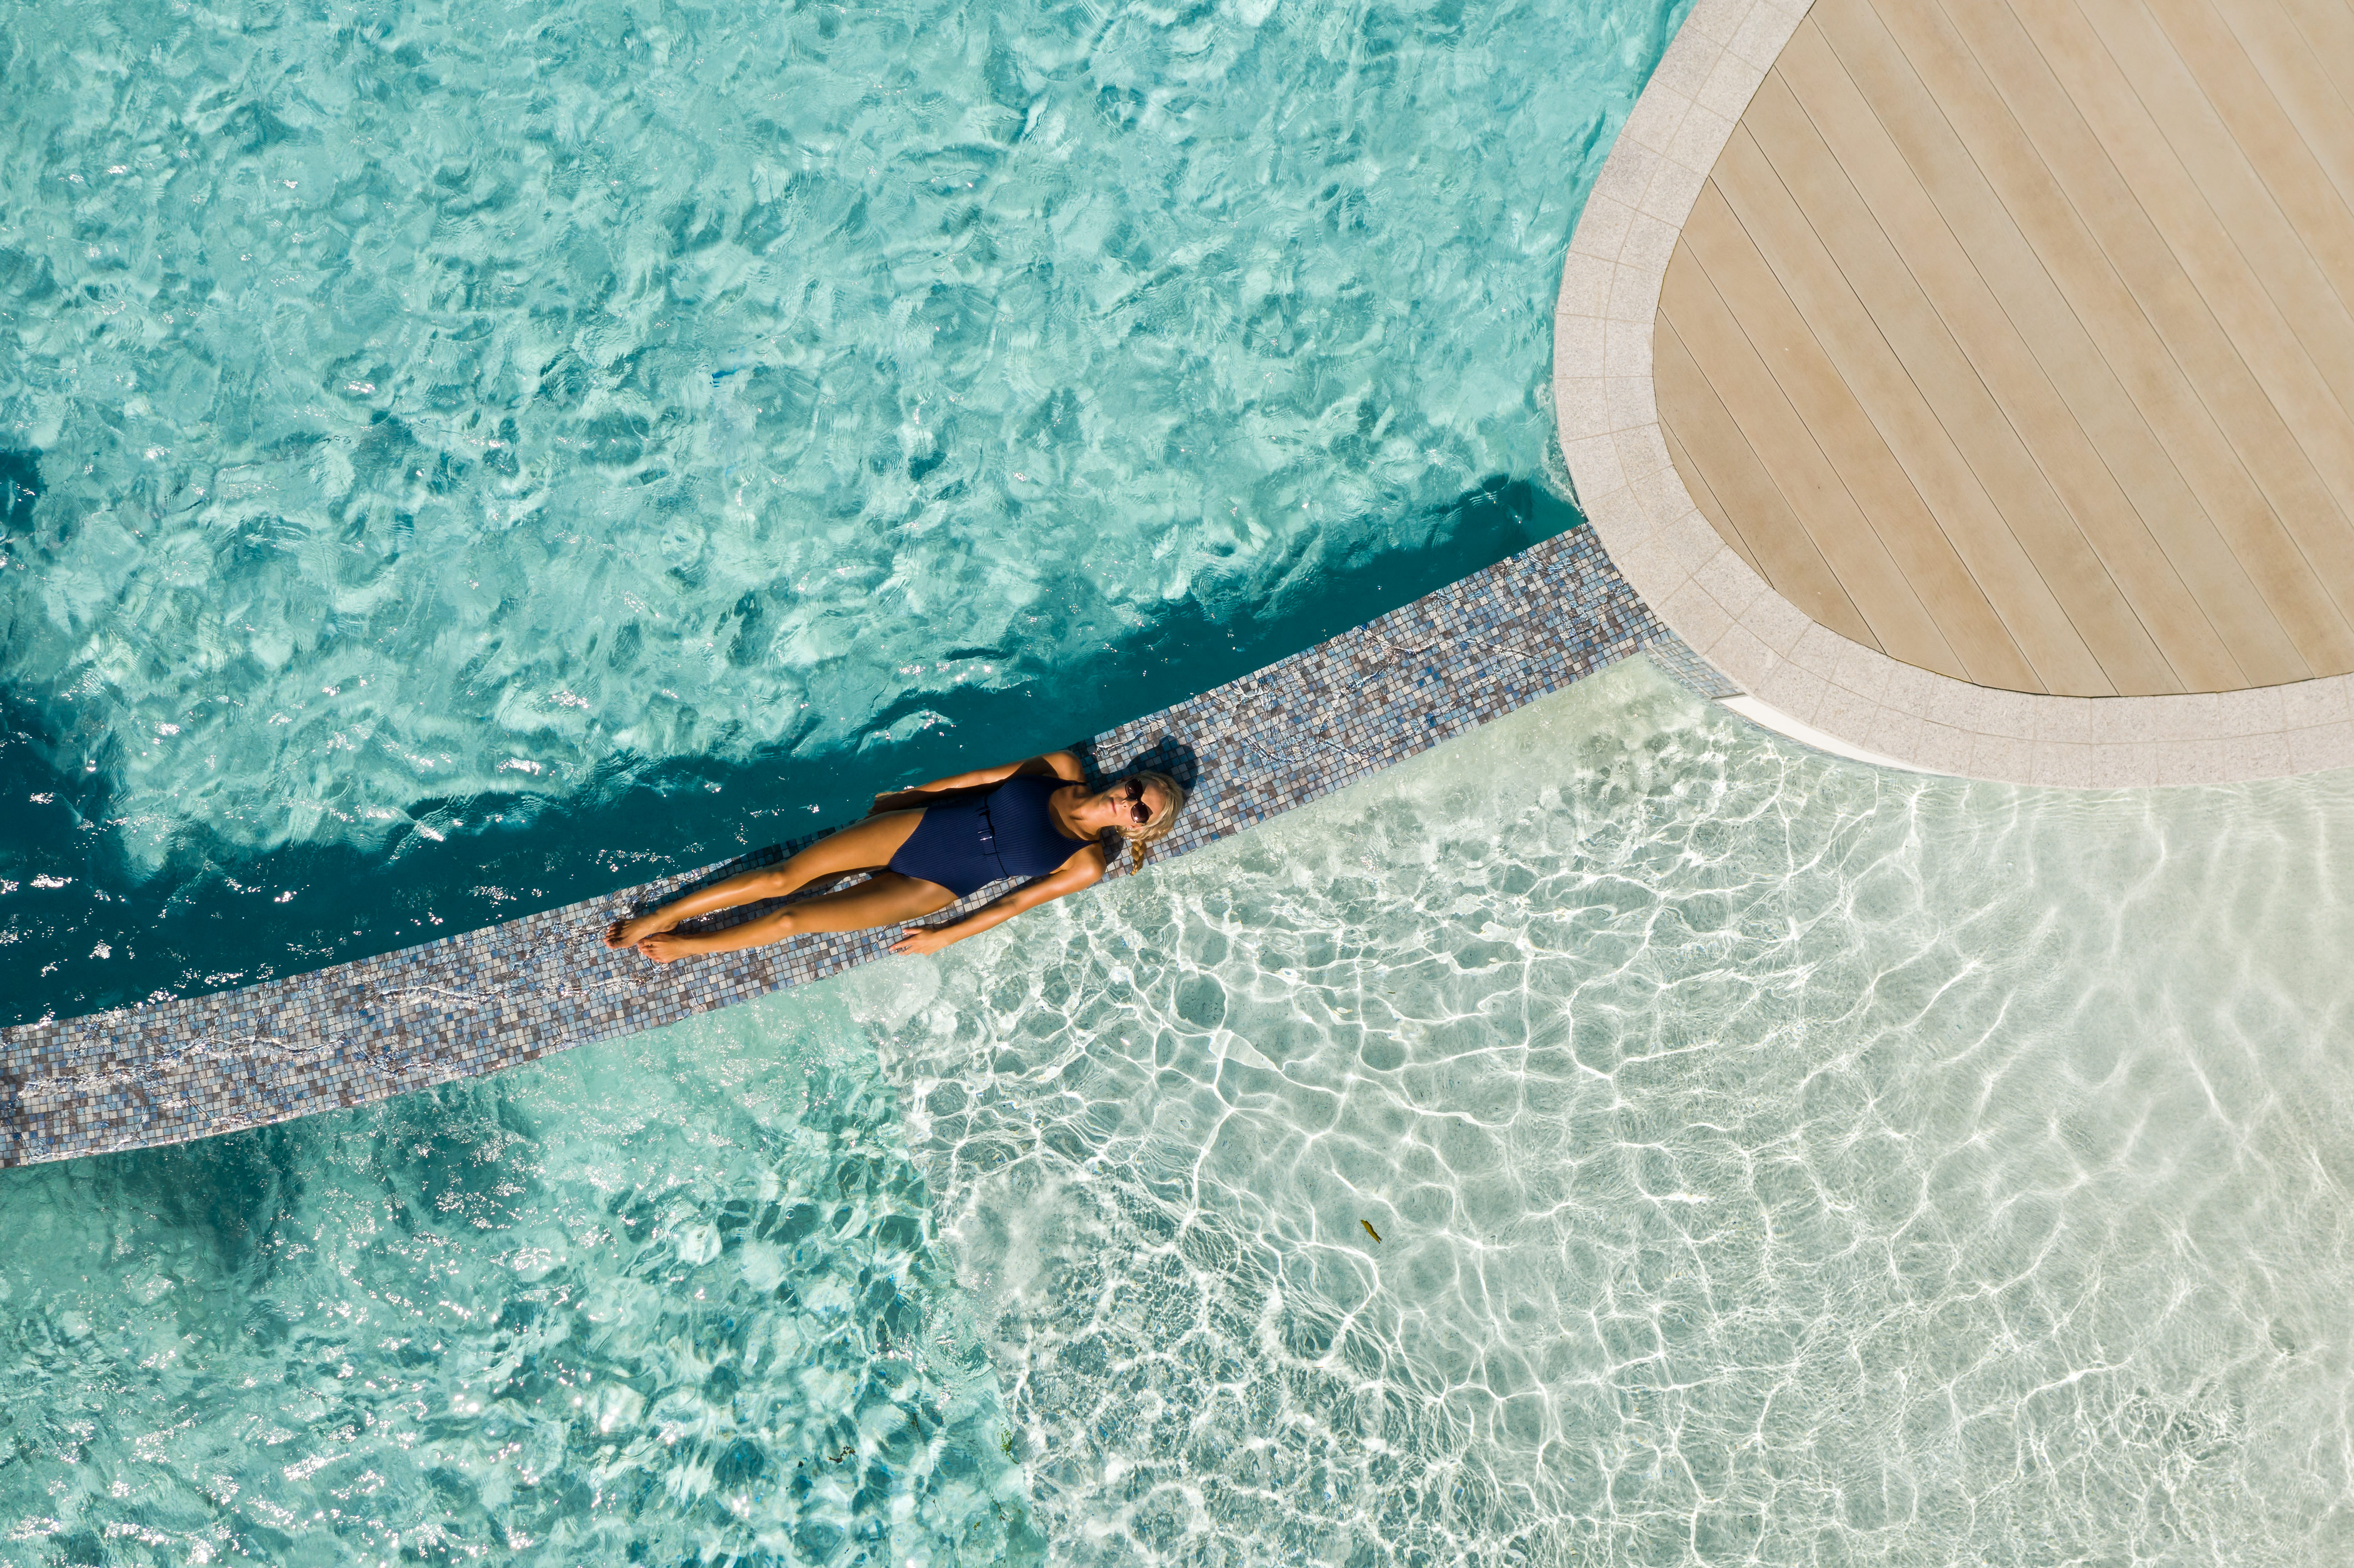 http://greatpacifictravels.com.au/hotel/images/hotel_img/11556364567Riley Pool Area 14.jpg